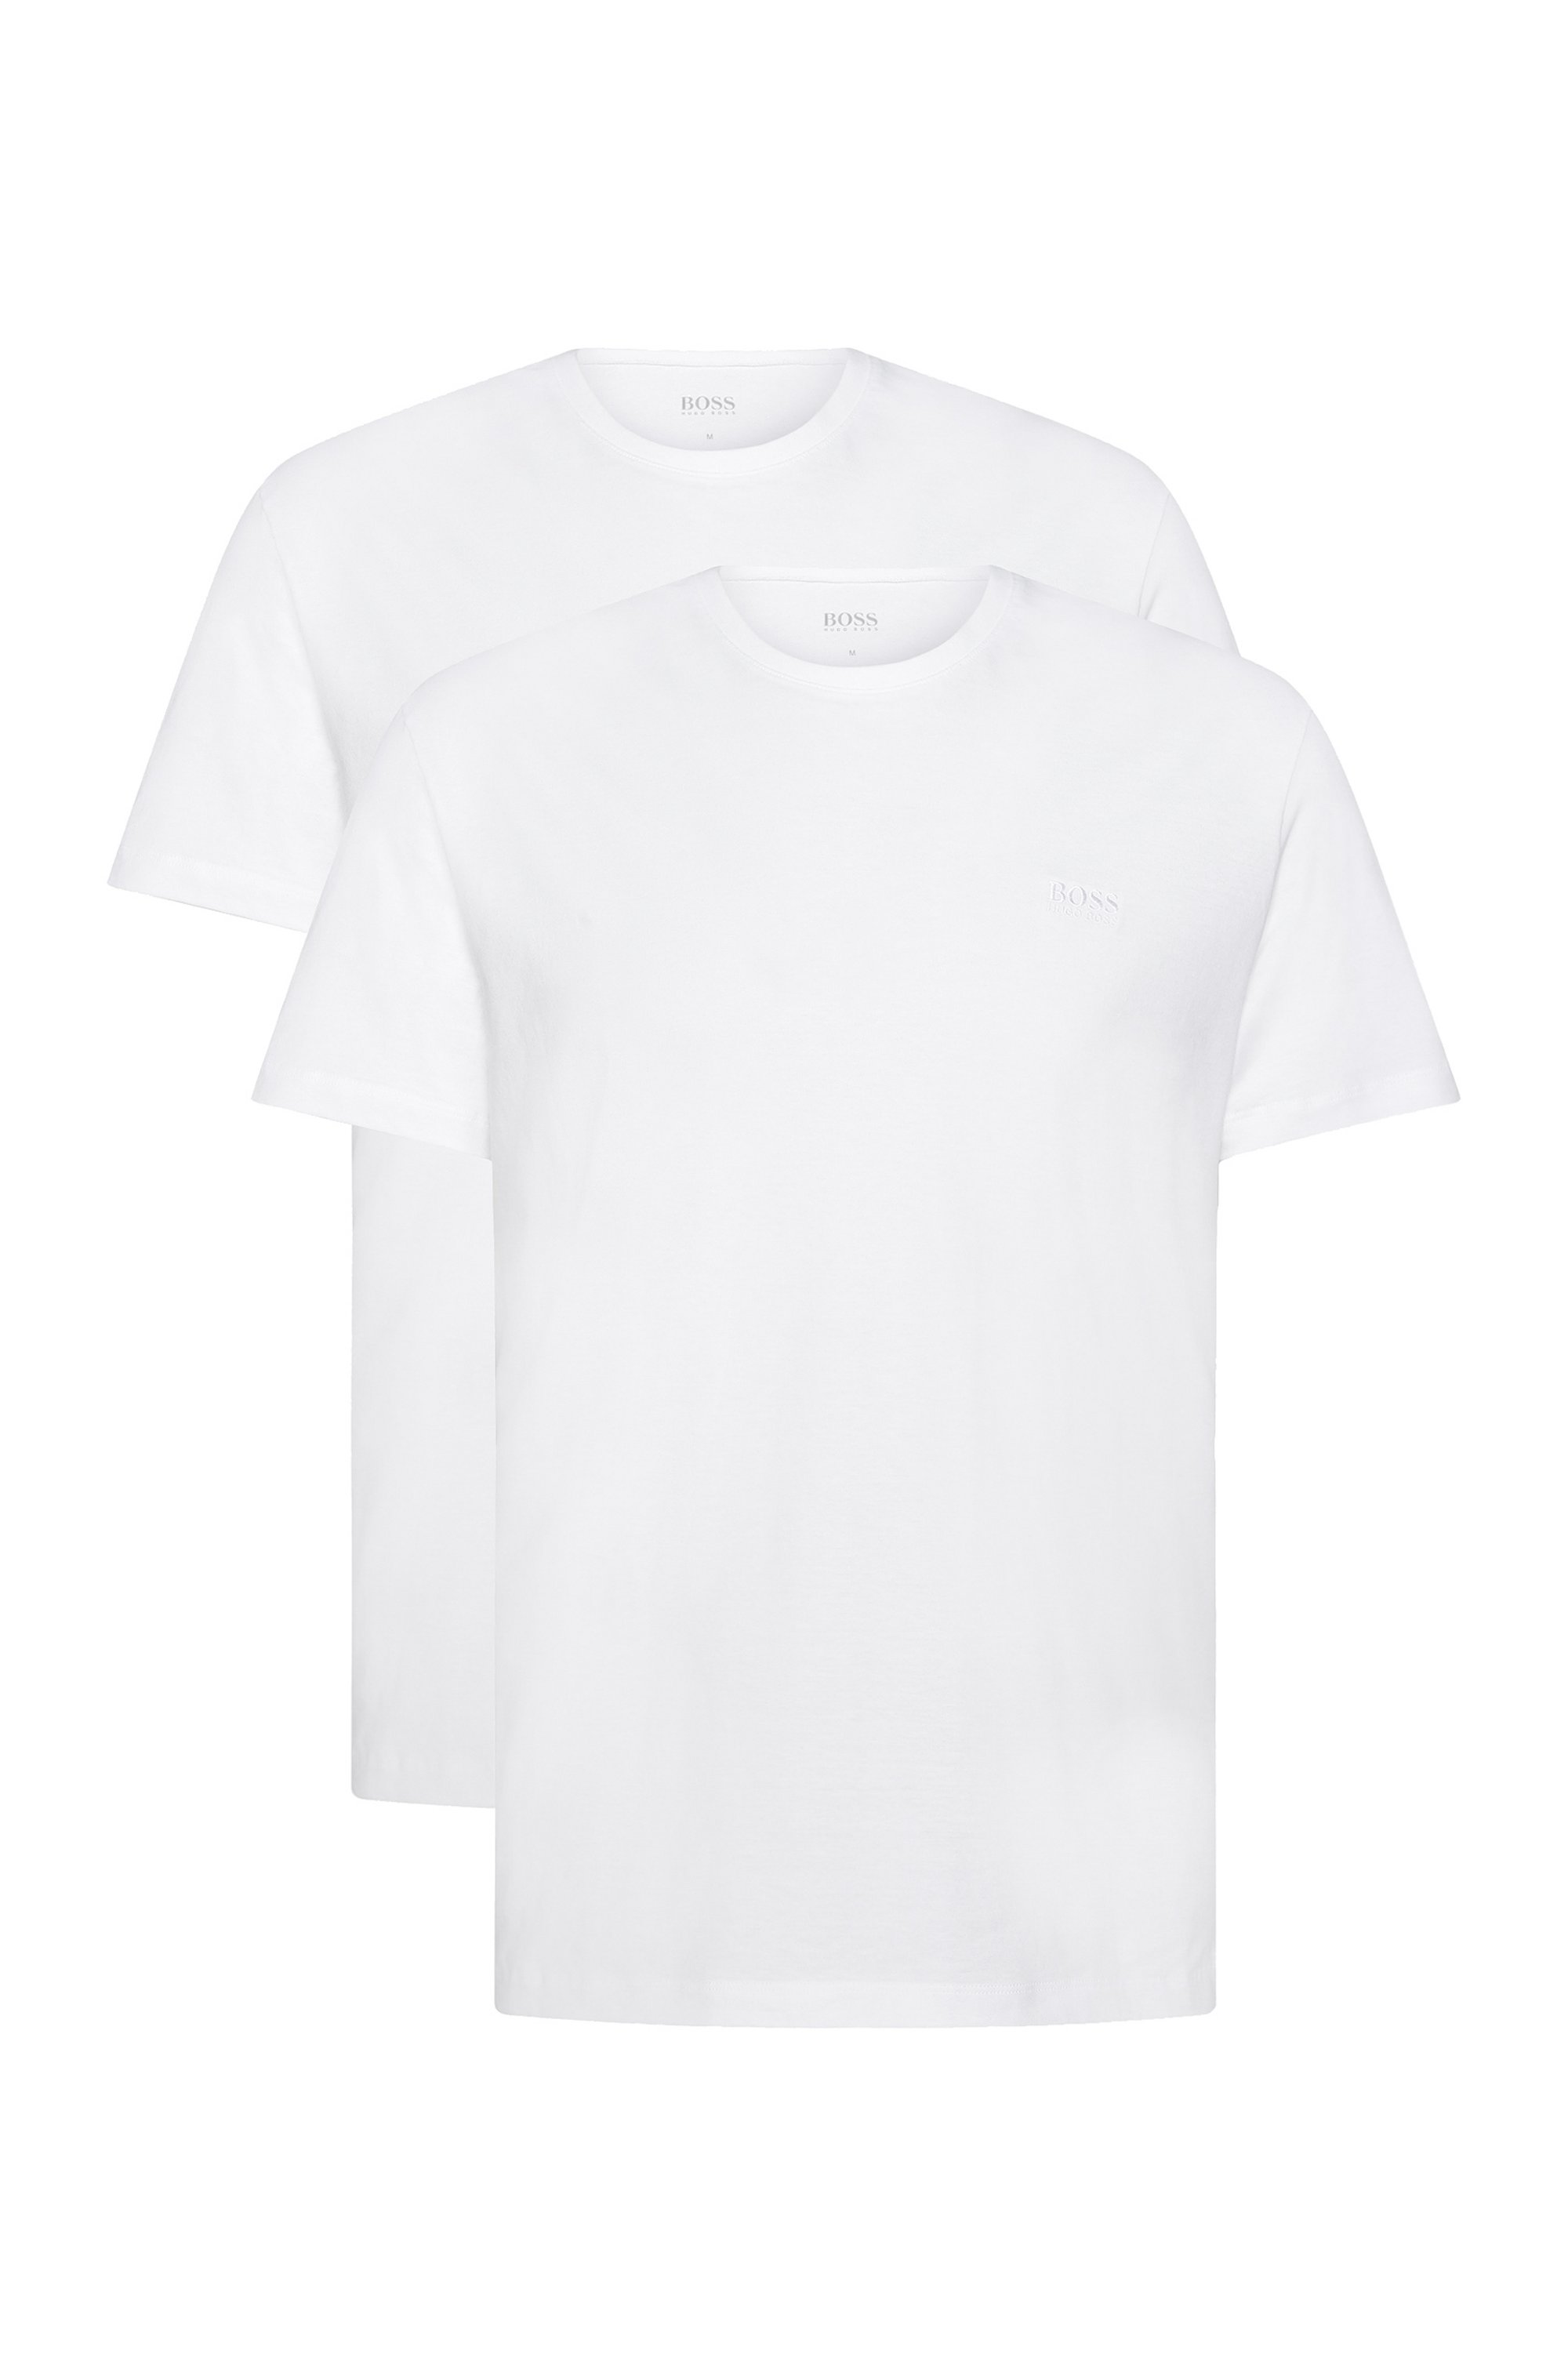 Two-pack of underwear T-shirts in cotton, White